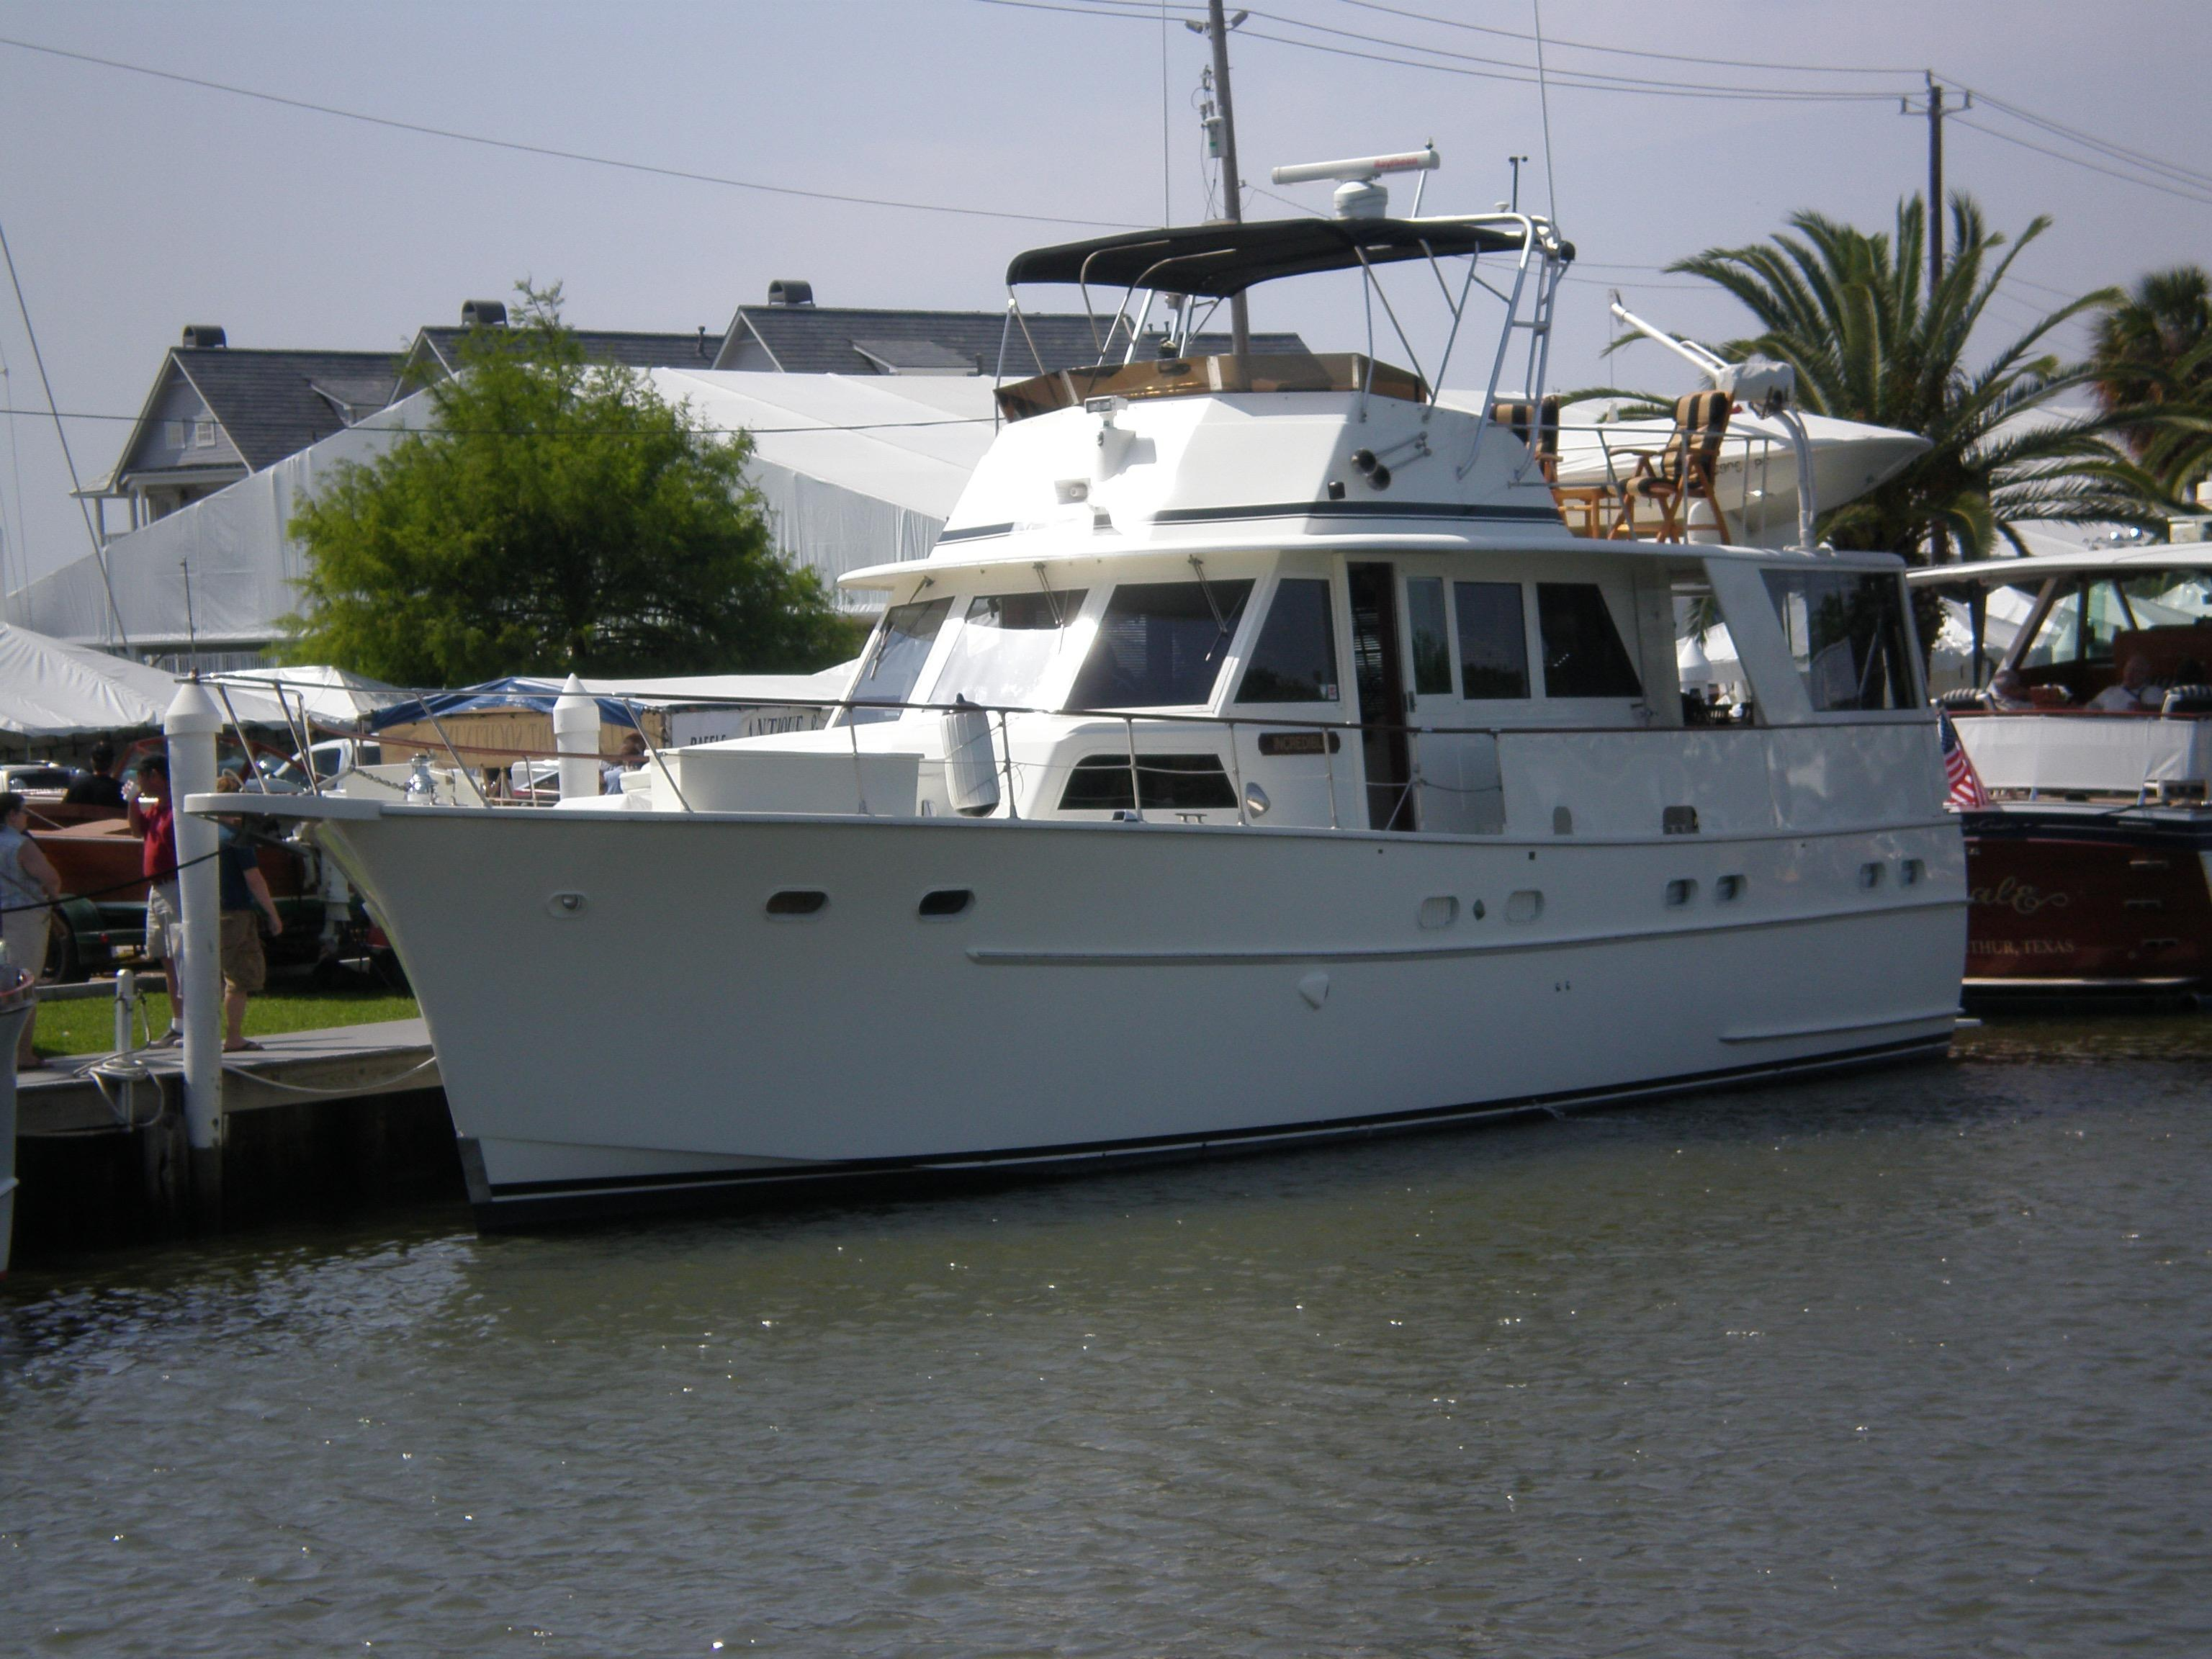 used hatteras yachts for sale from 40 to 50 feet